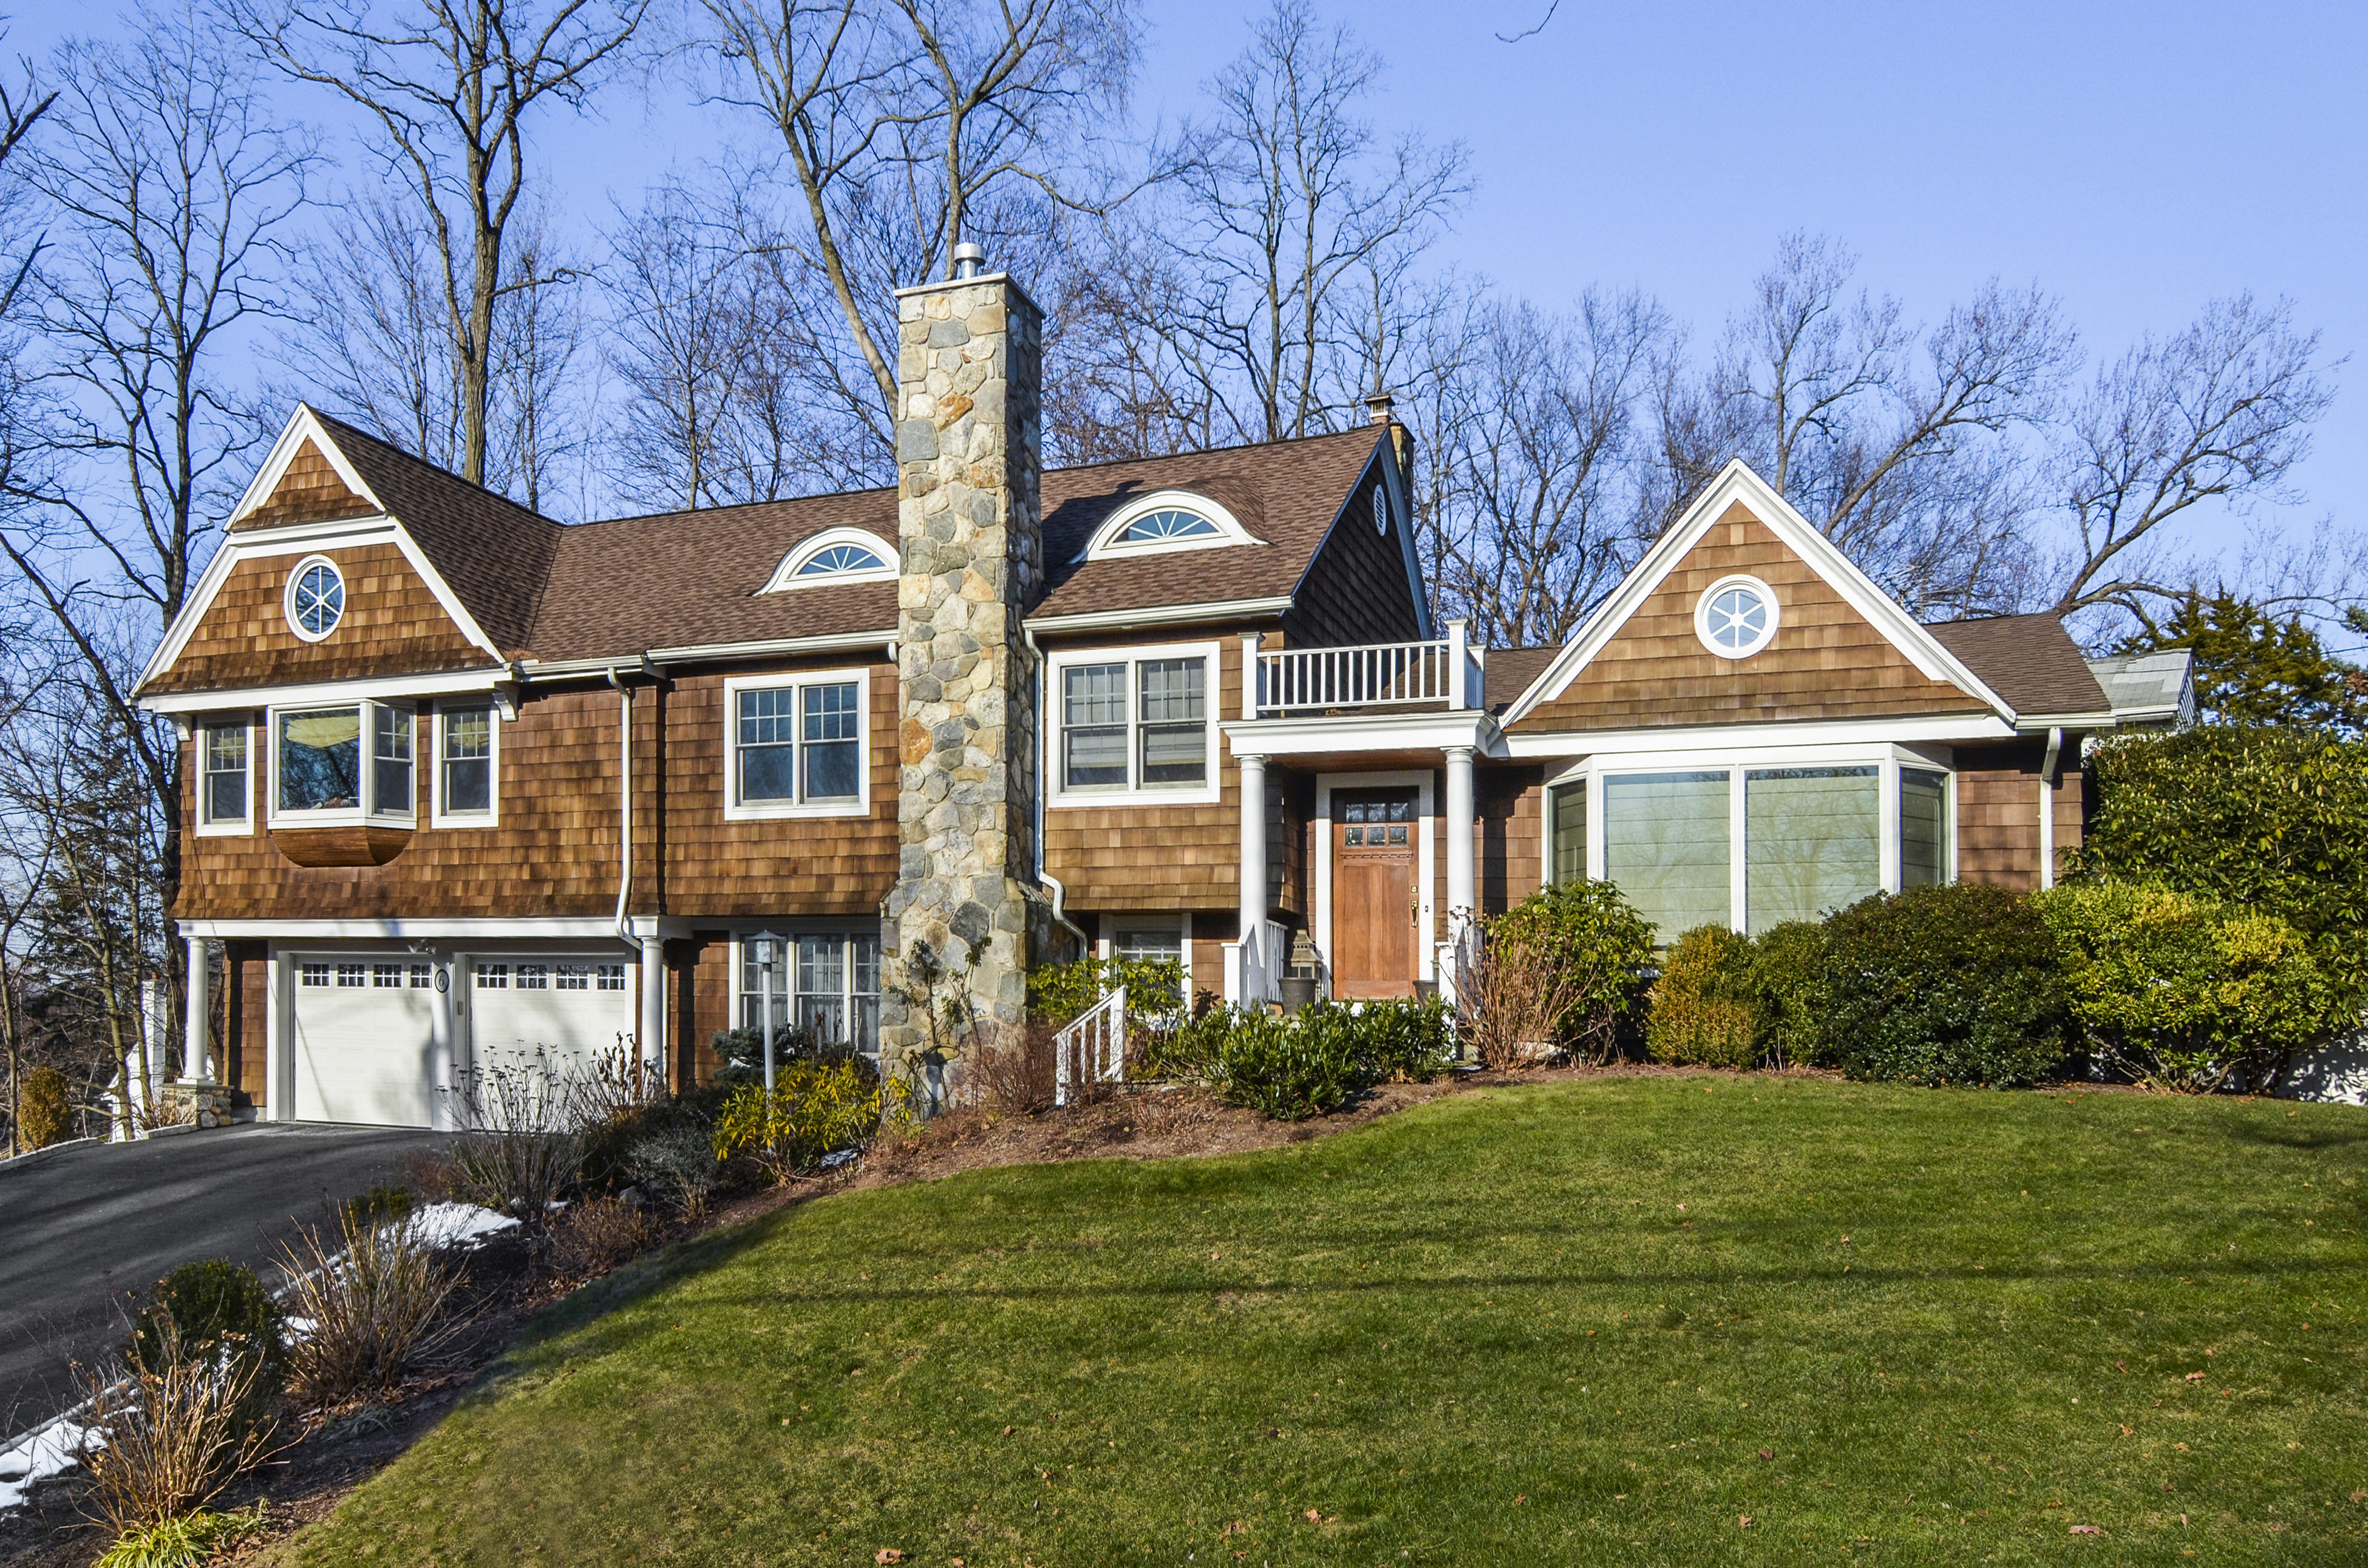 Single Family Home for Sale at Delightful Colonial 6 Skytop Road Scarsdale, New York, 10583 United States